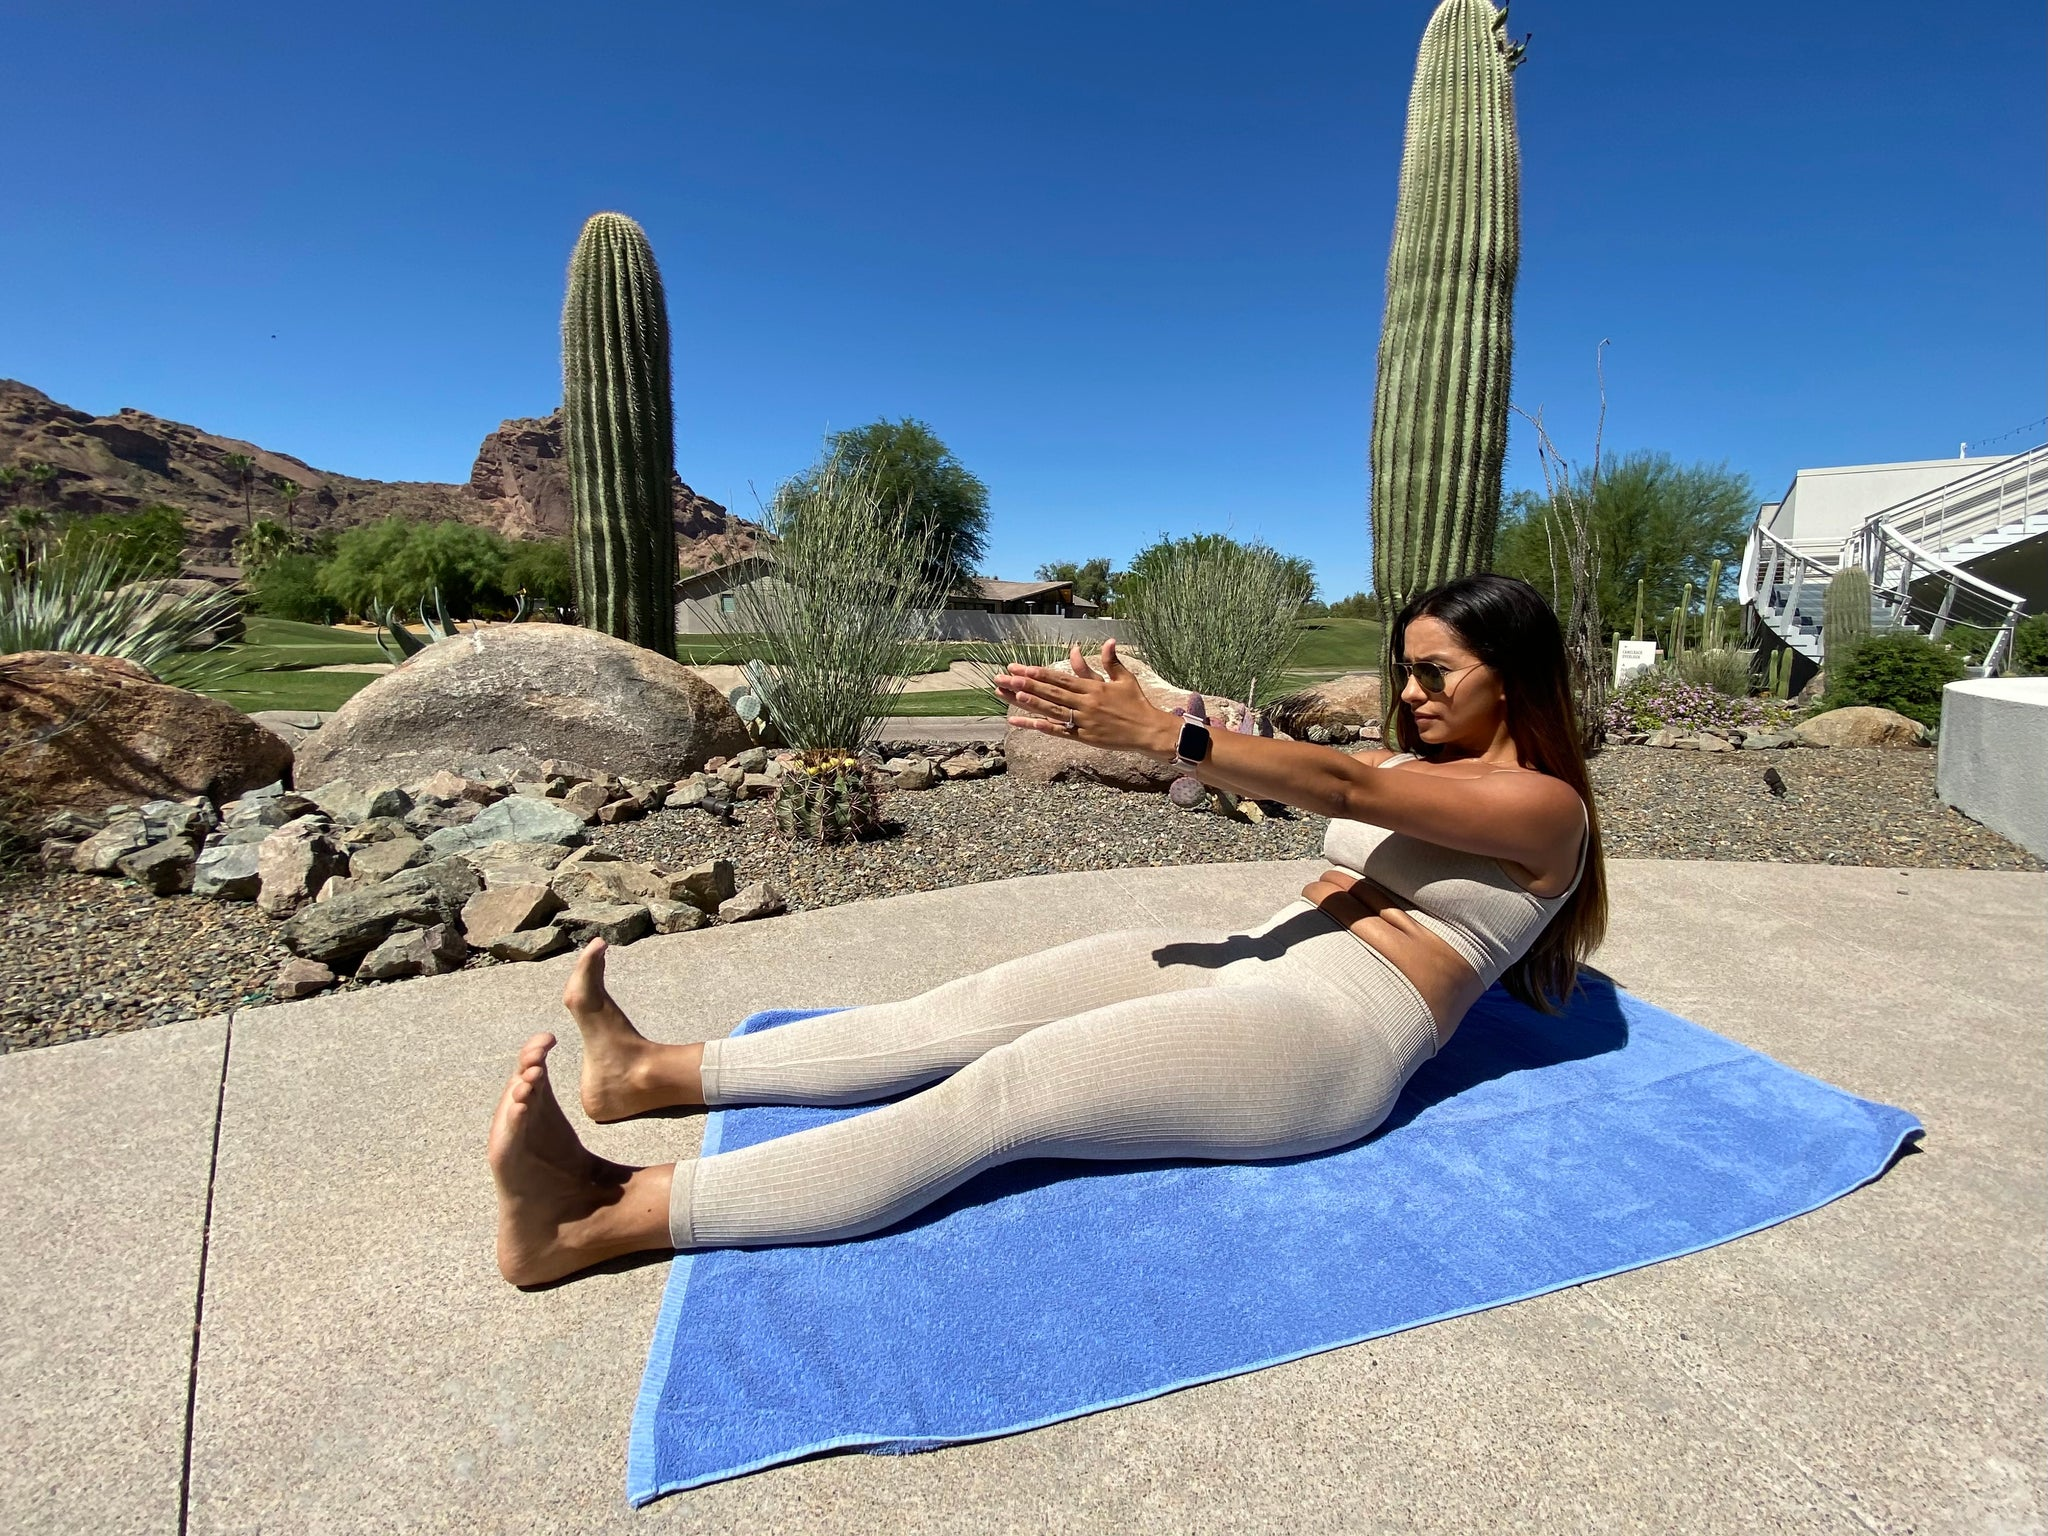 2 9bd8c0a2 7e73 47de ad73 dbb51bb6d3d7 2048x2048 5 Pilates Moves for a Stronger Core and Better Posture with Julia Garcia